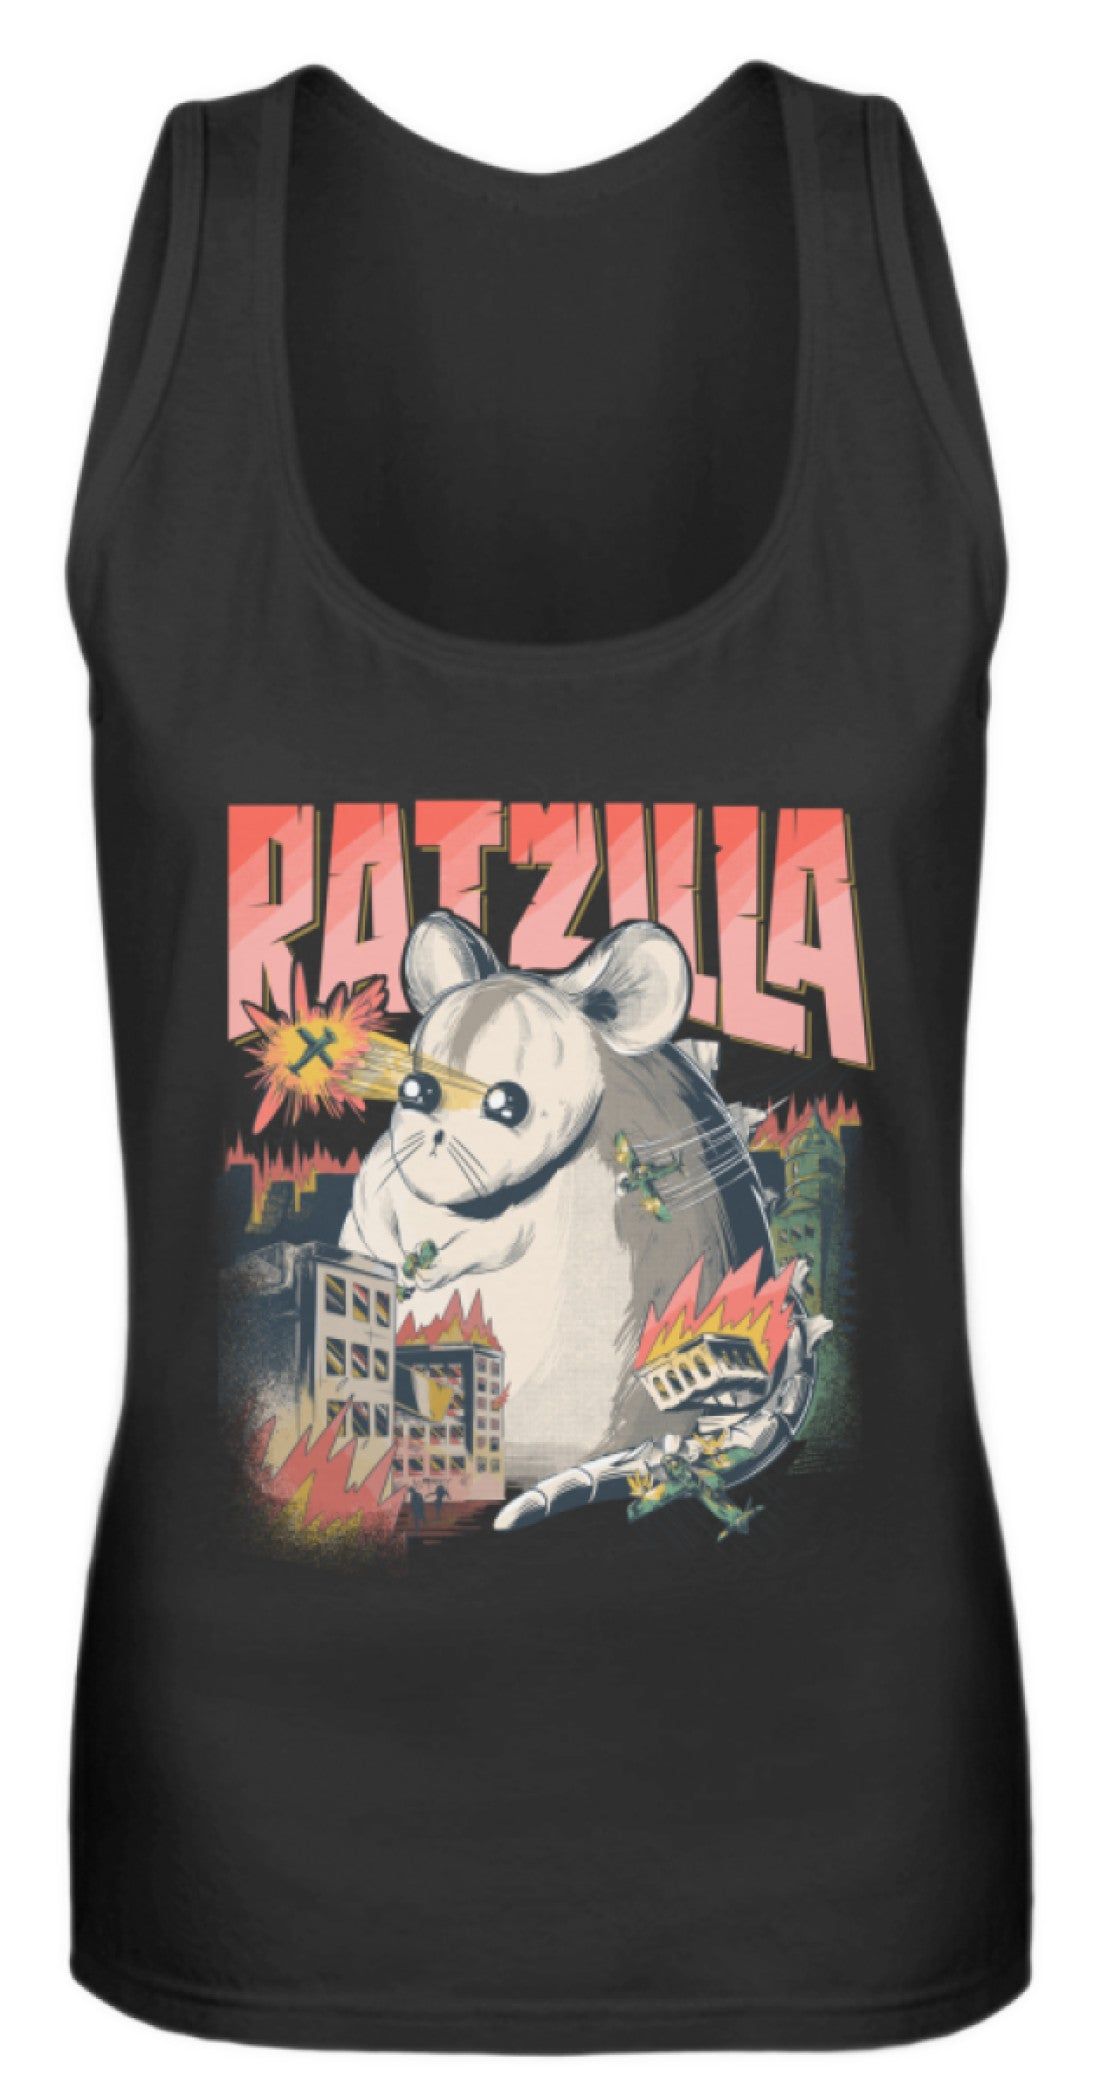 RATZILLA | Lustiges Farbratten-Monster | Frauen Tank Top in Black in Größe S